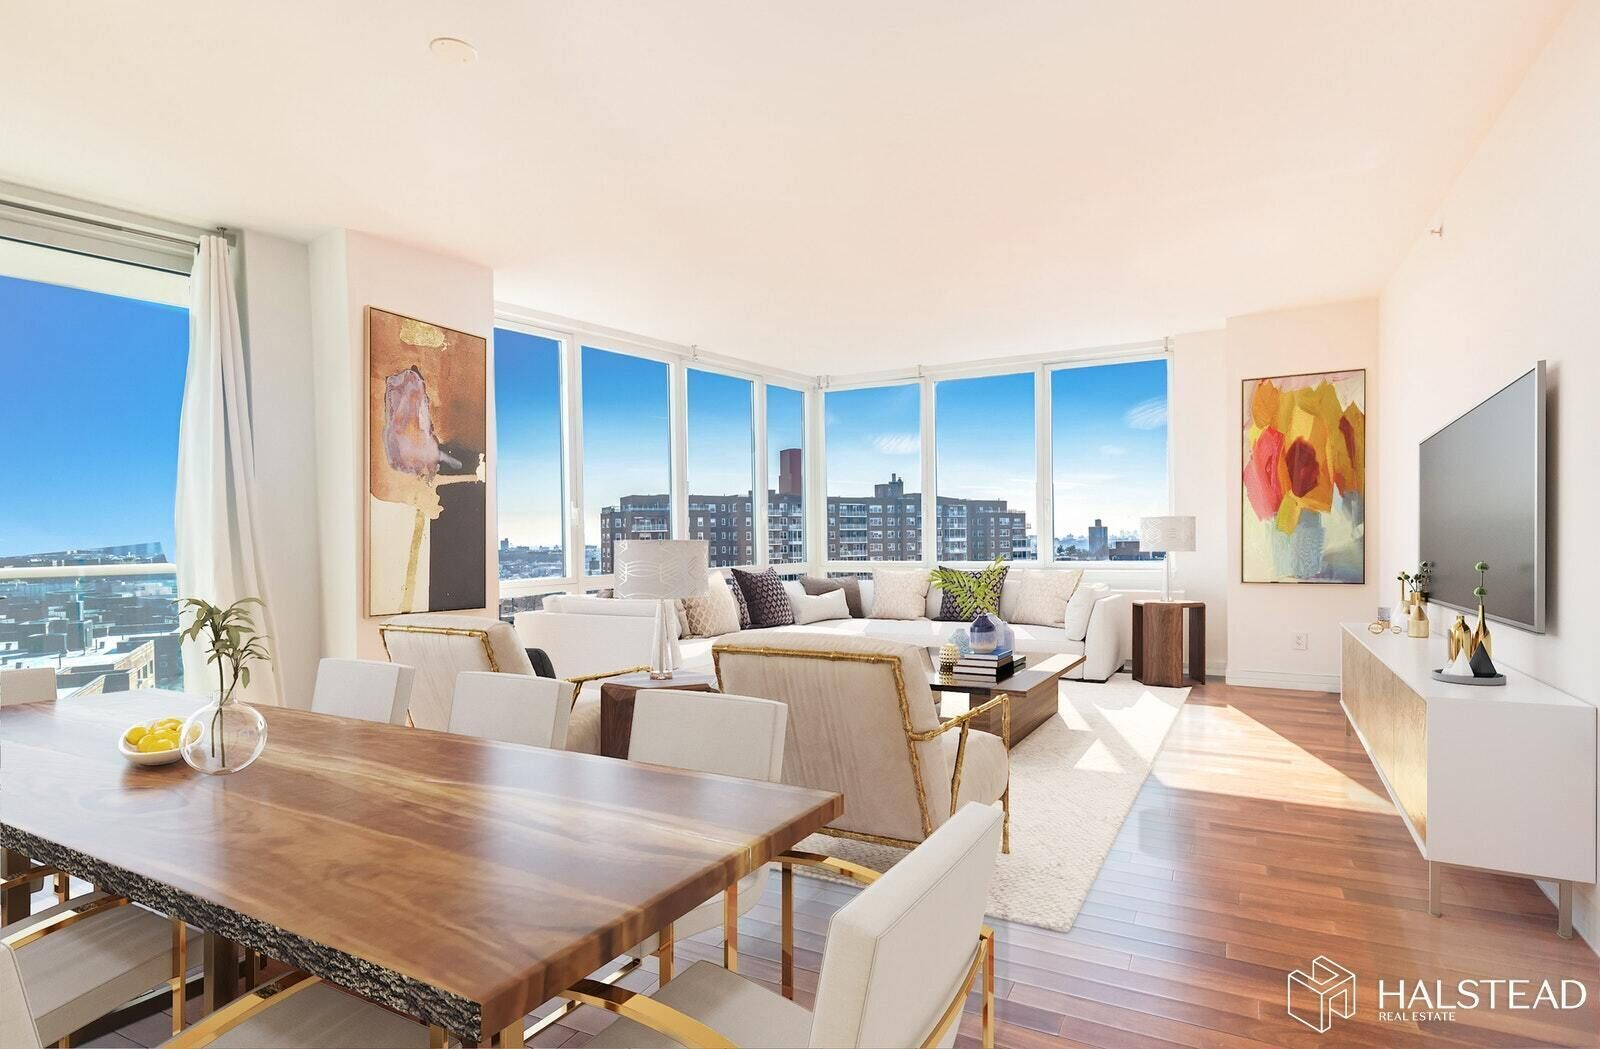 Apartment for sale at 640 West 237th Street, Apt 10A